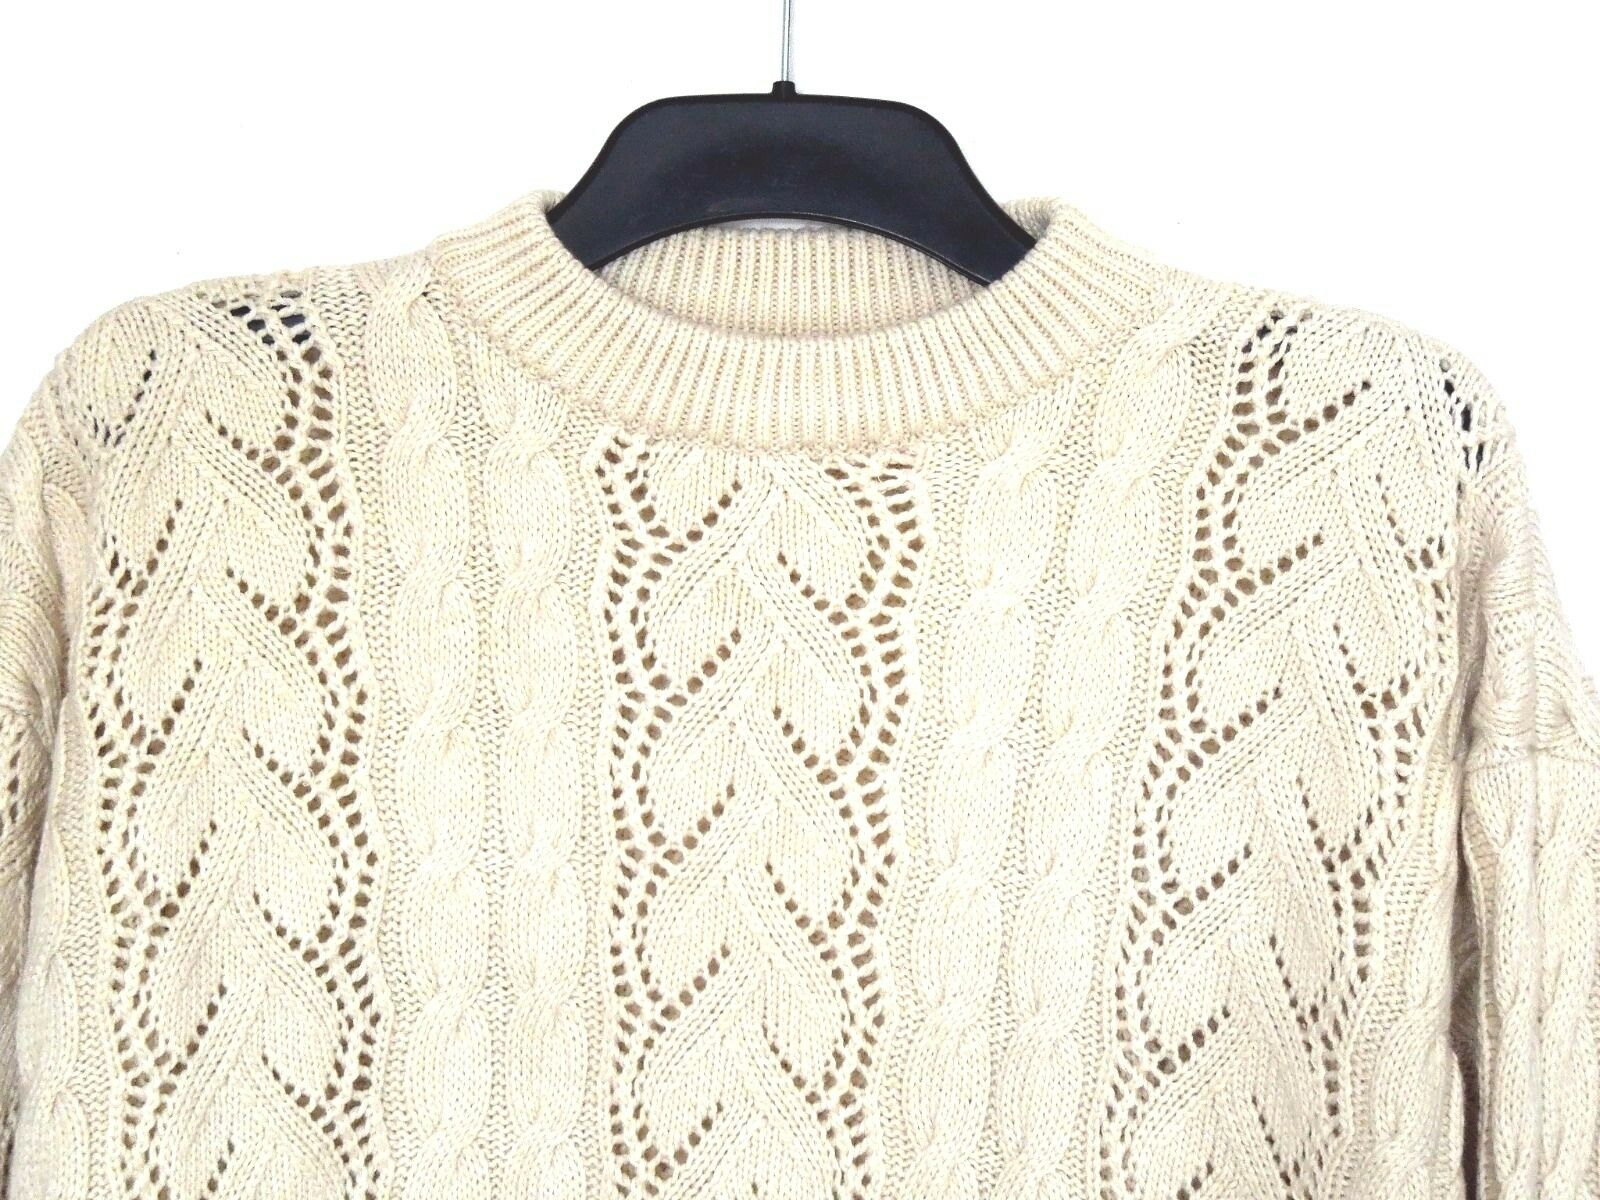 UNIQUE HANDMADE Cable Knit Knit Knit Jumper, 16-18-20 UK, 58 cm Chest 100% WOOL Off White fe8ae6